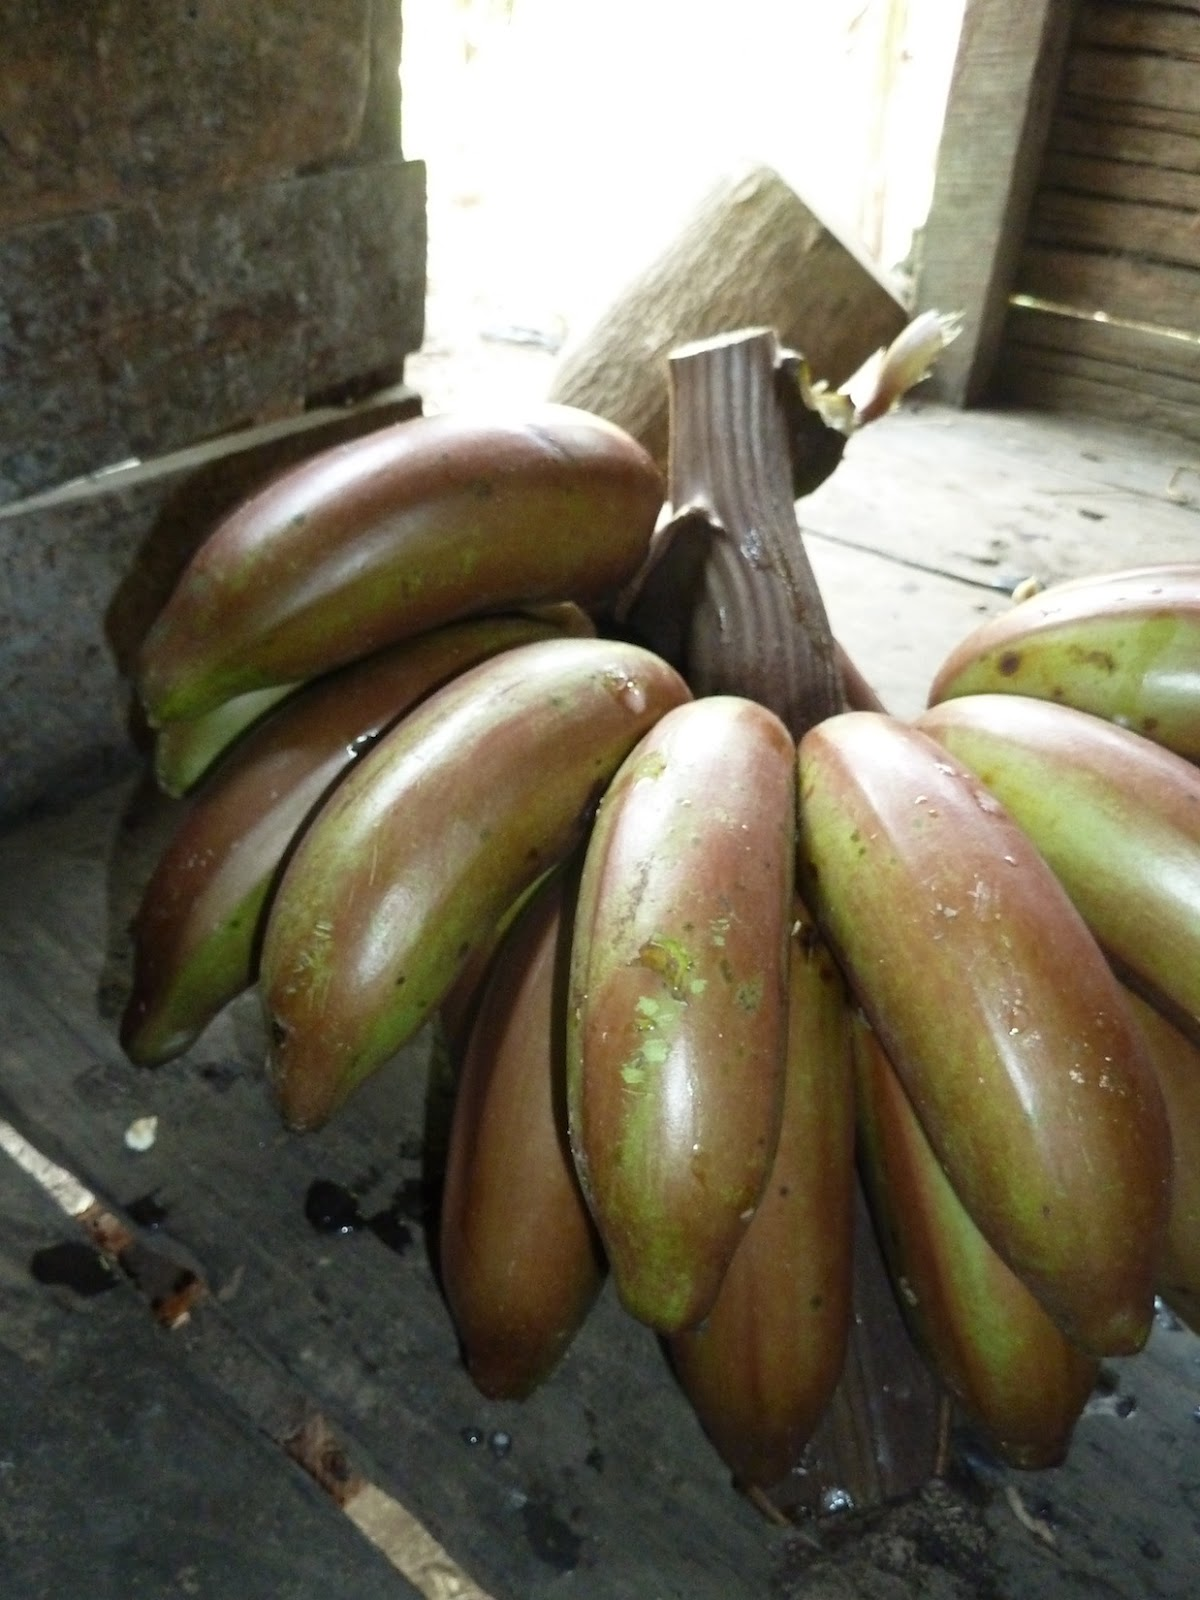 What Are Banana Plant Pups How To Separate Banana Tree: Farms Forests Foods: December 2012